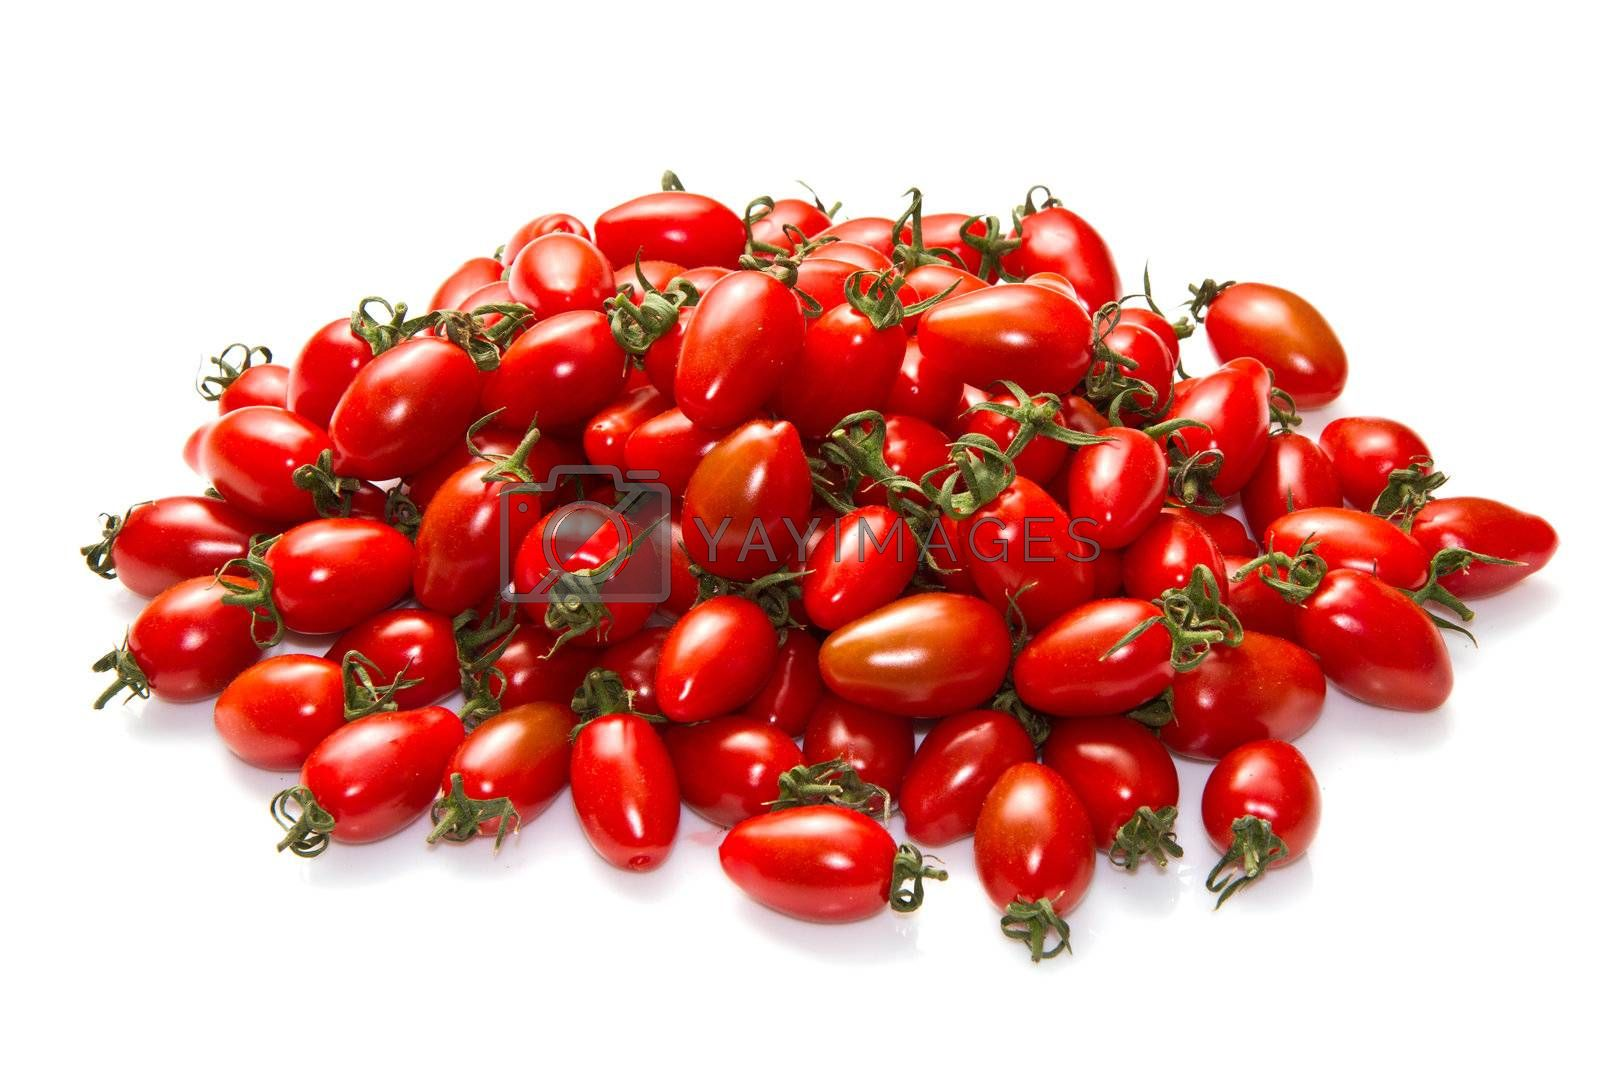 group of fresh red tomatoes isolated on white background